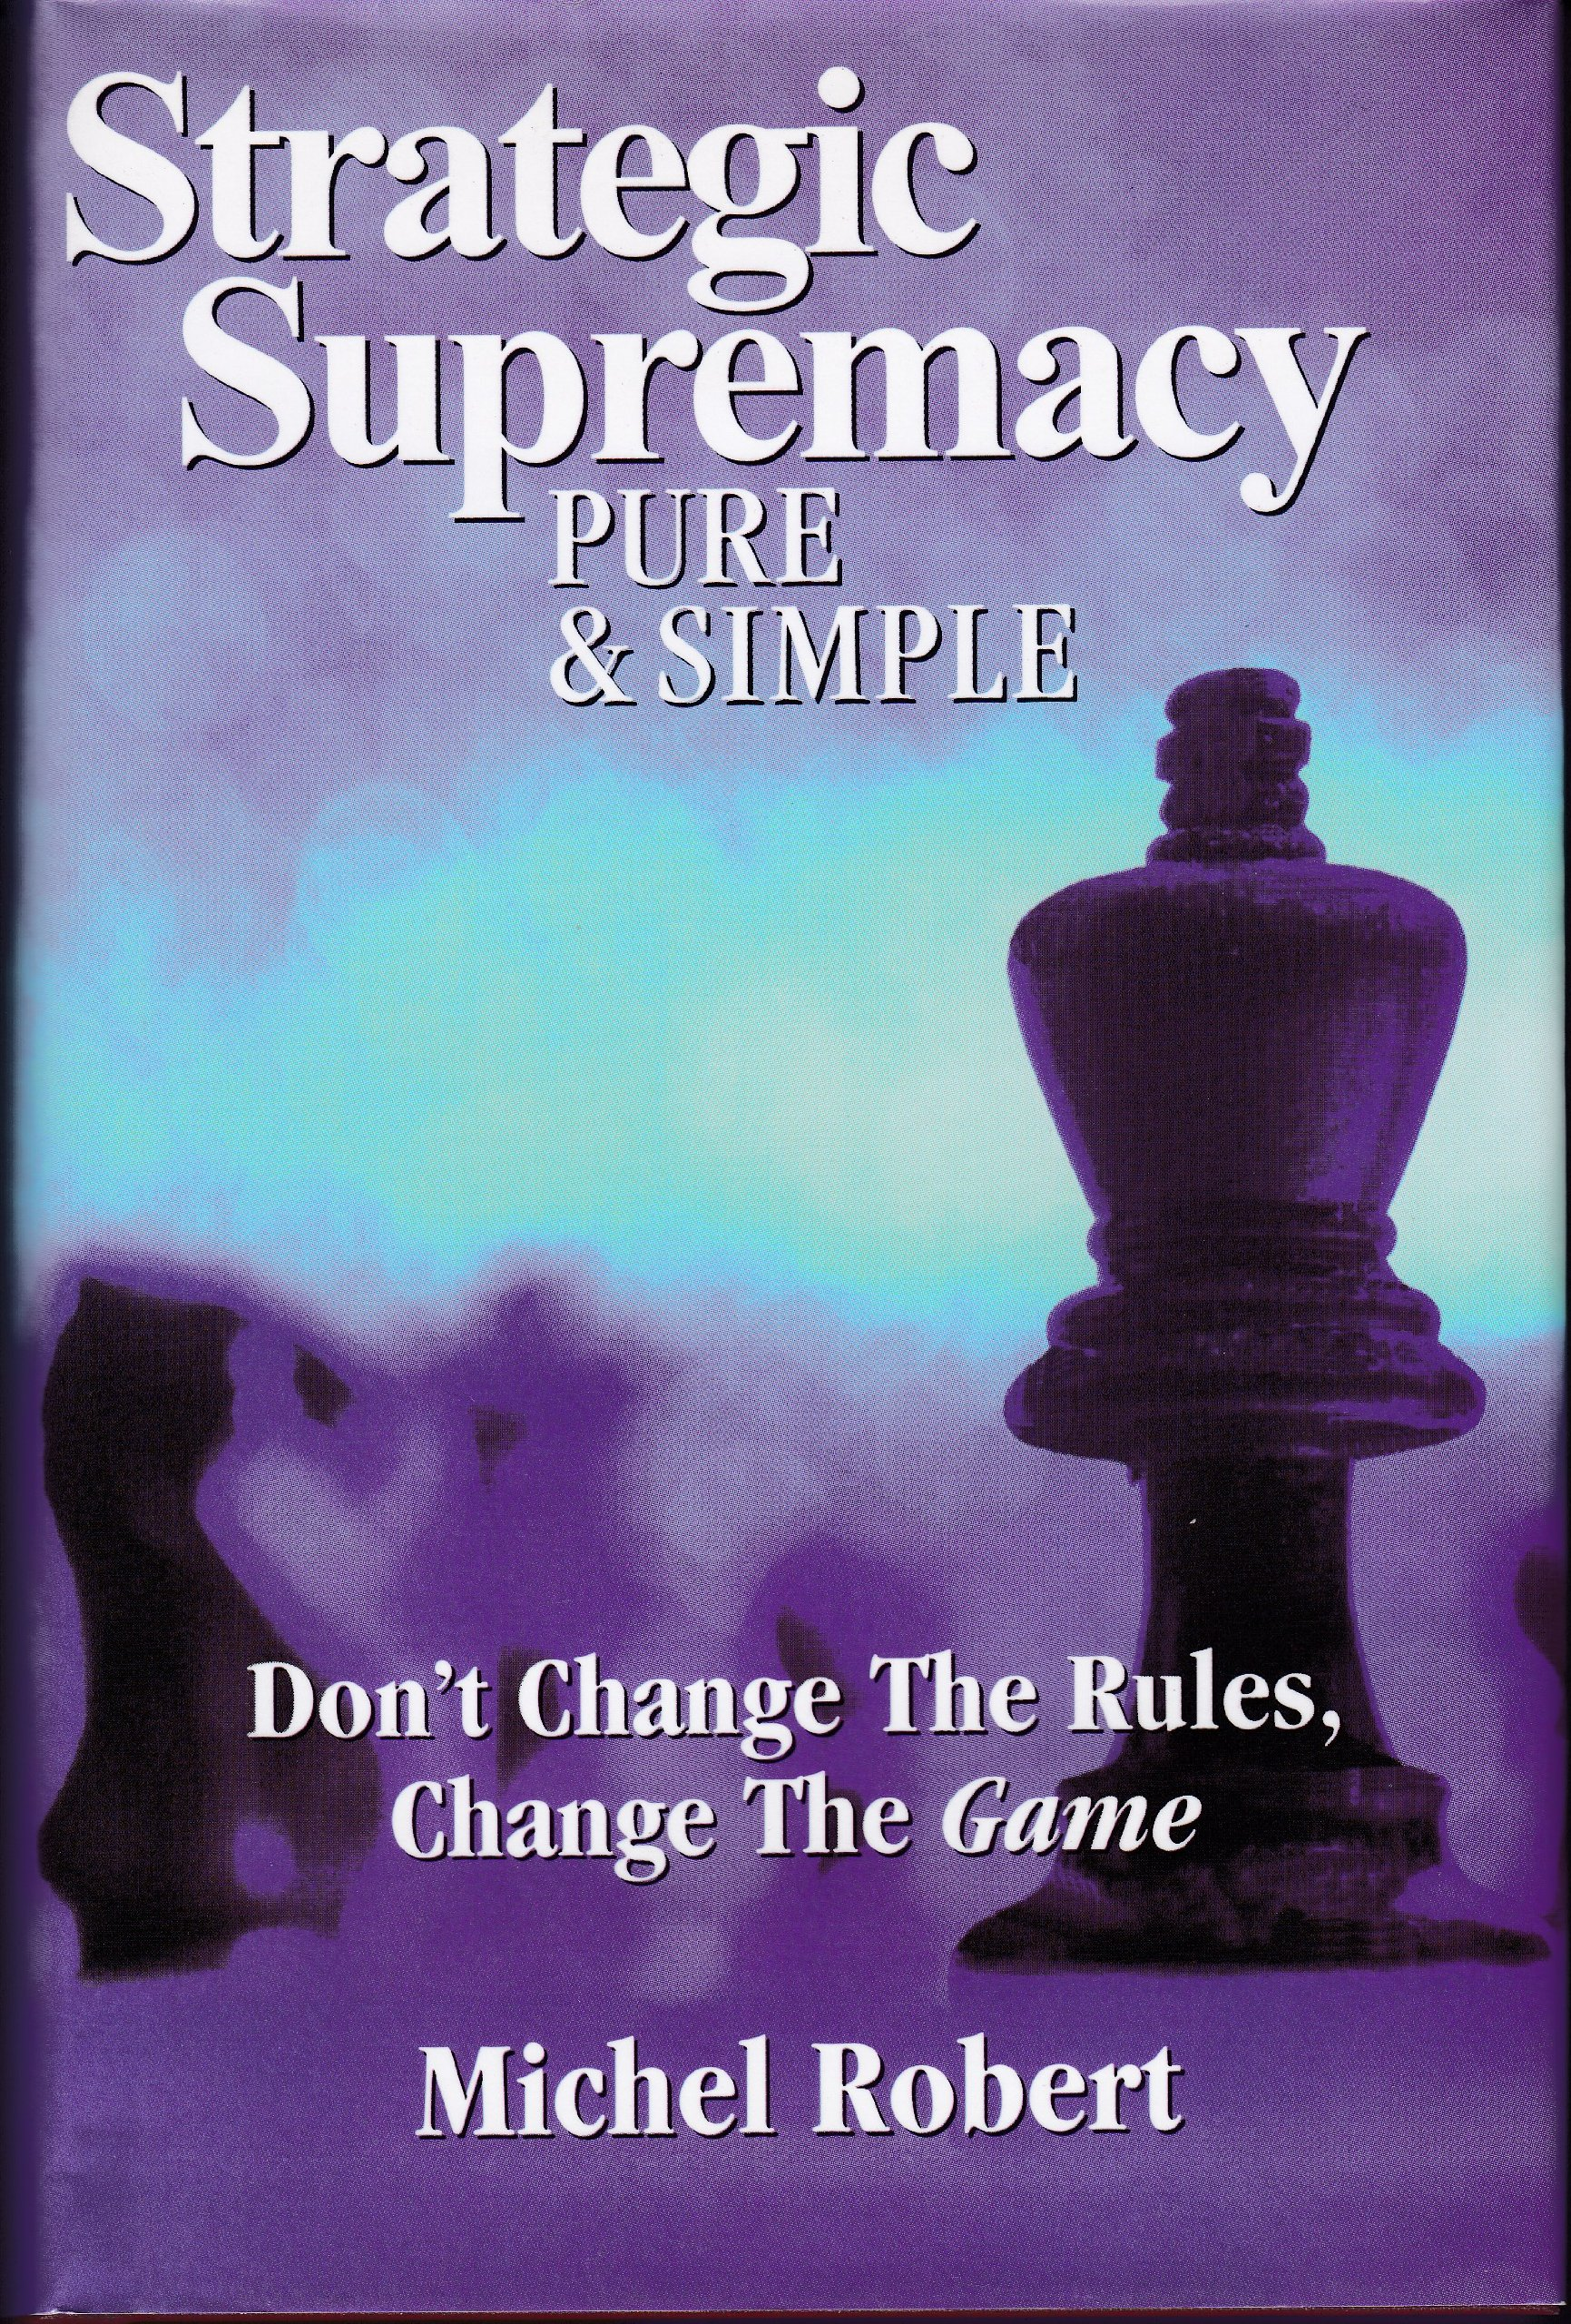 Download Strategic Supremacy Pure & Simple : Don't Change The Rules, Change The Game pdf epub